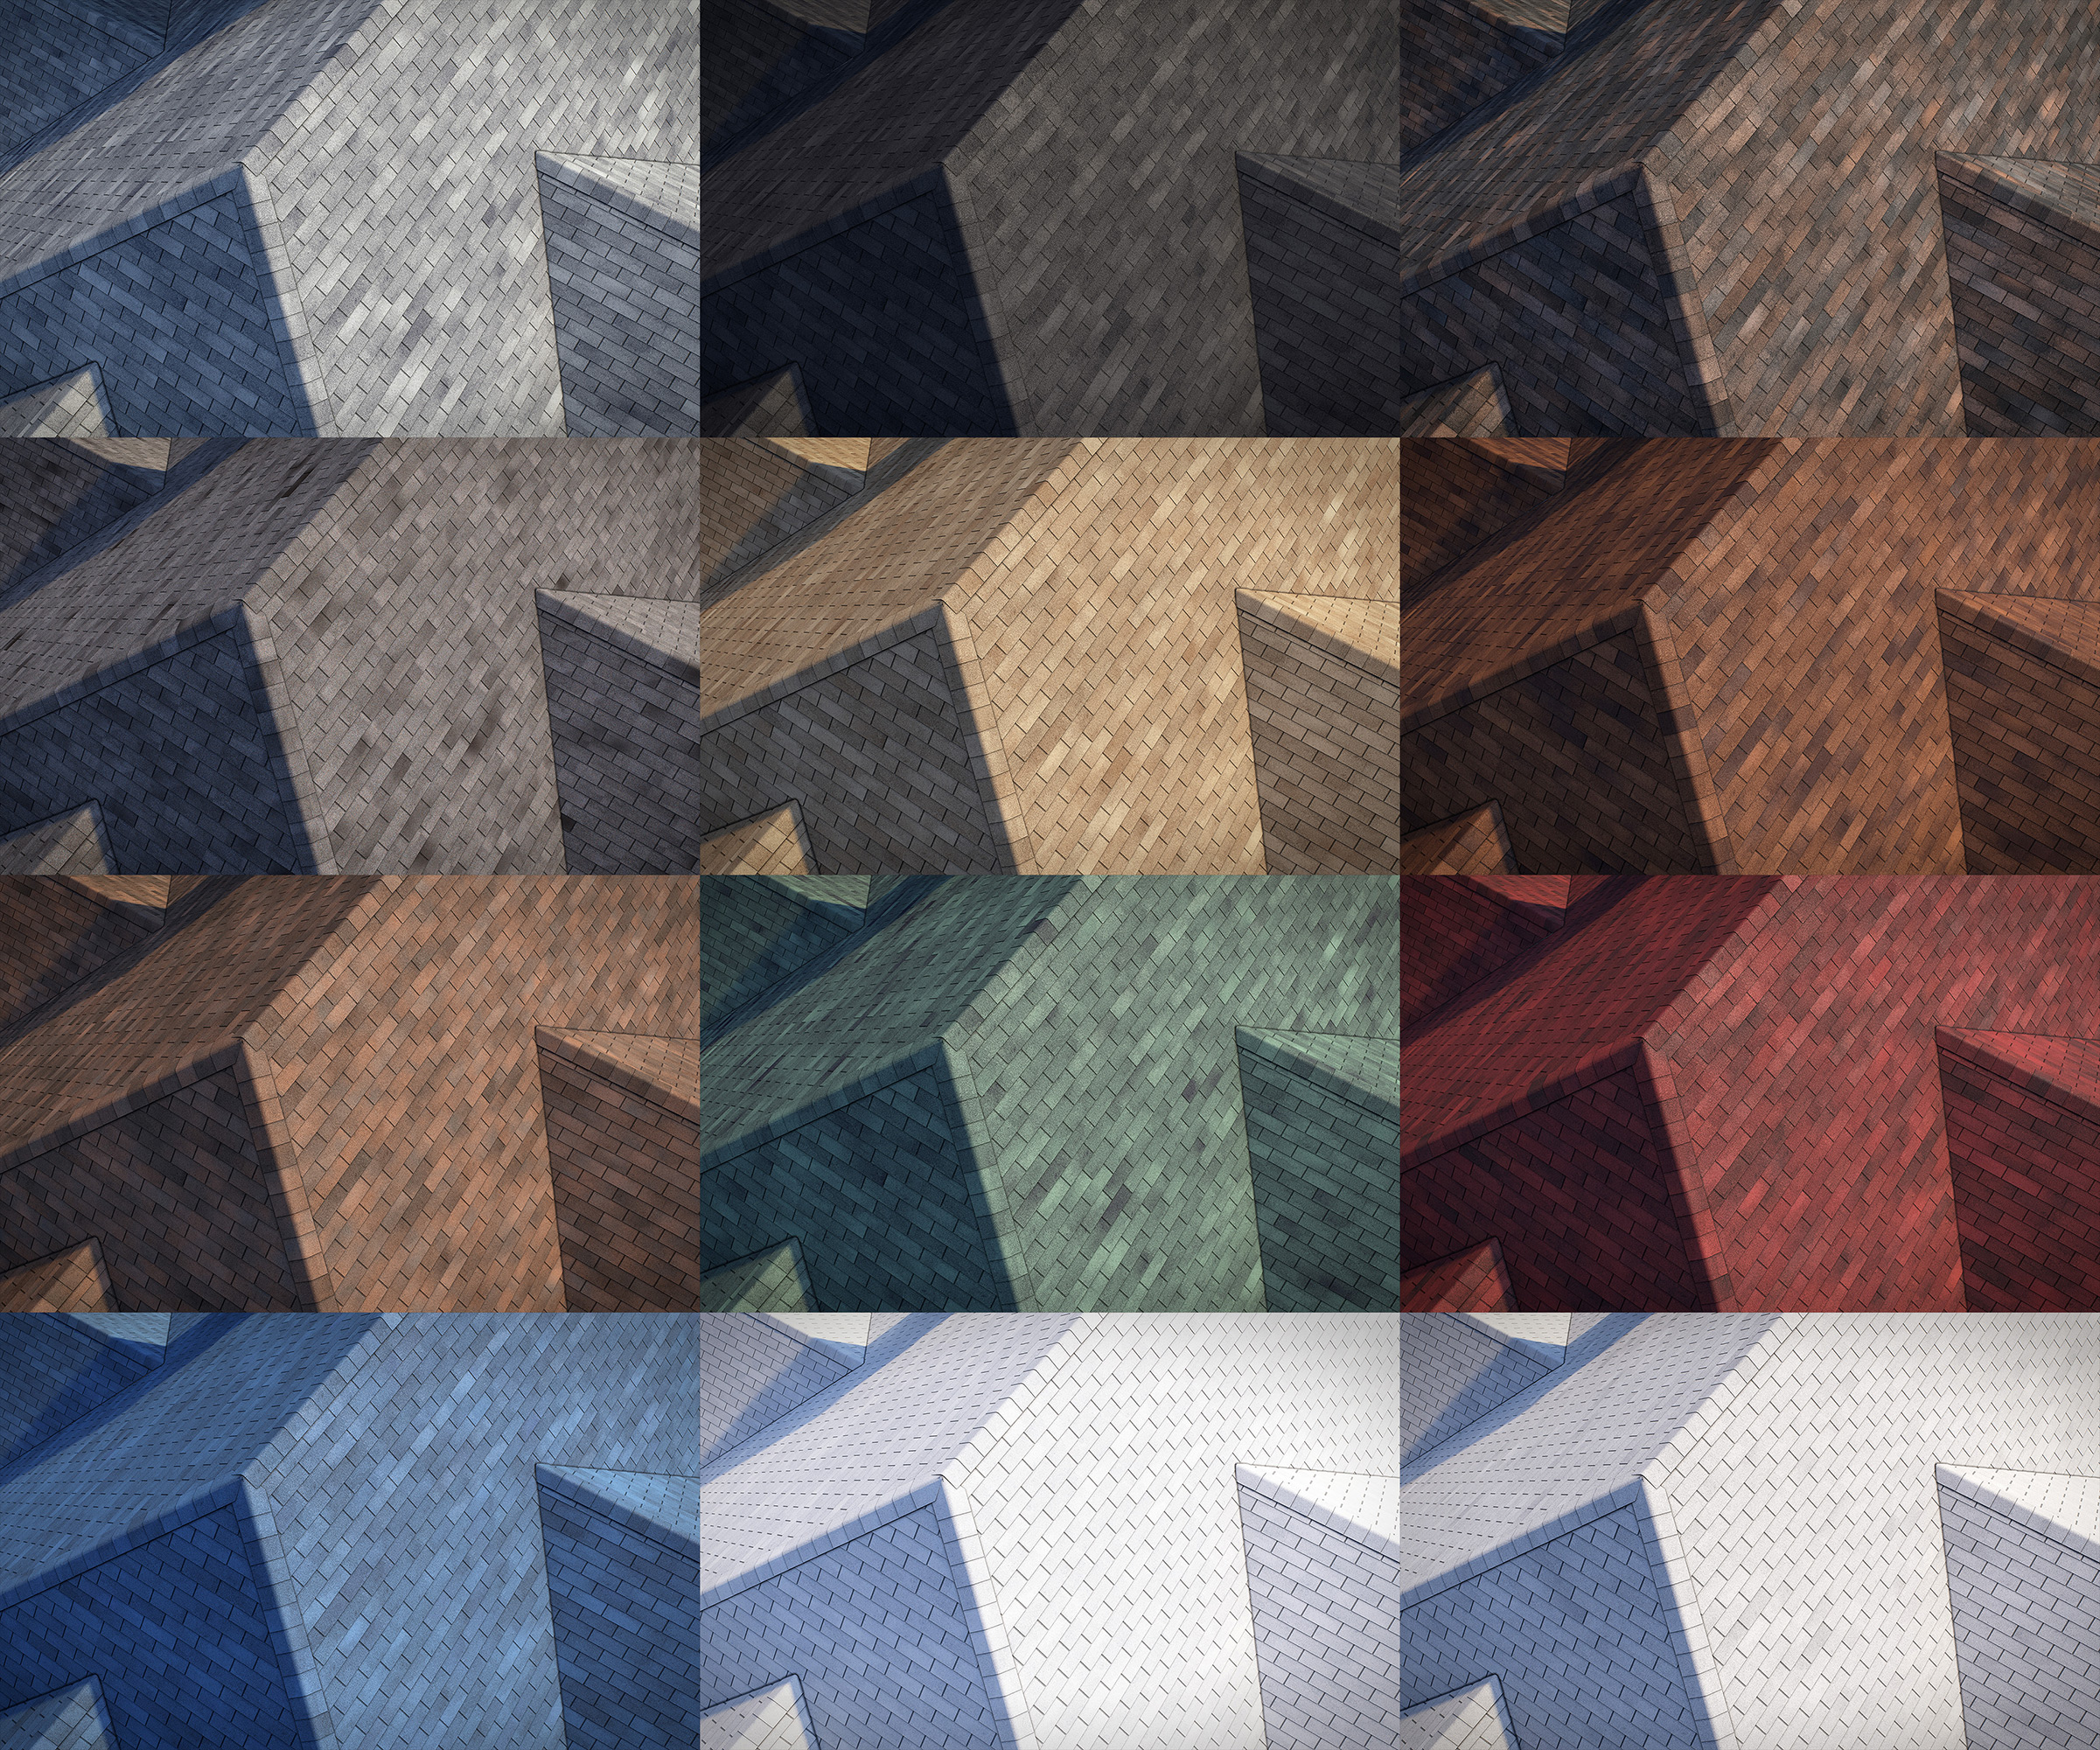 3-tab asphalt roof shingles 3D model preset for 3dsmax and RailClone. Rendered with vray, made for arch-viz.